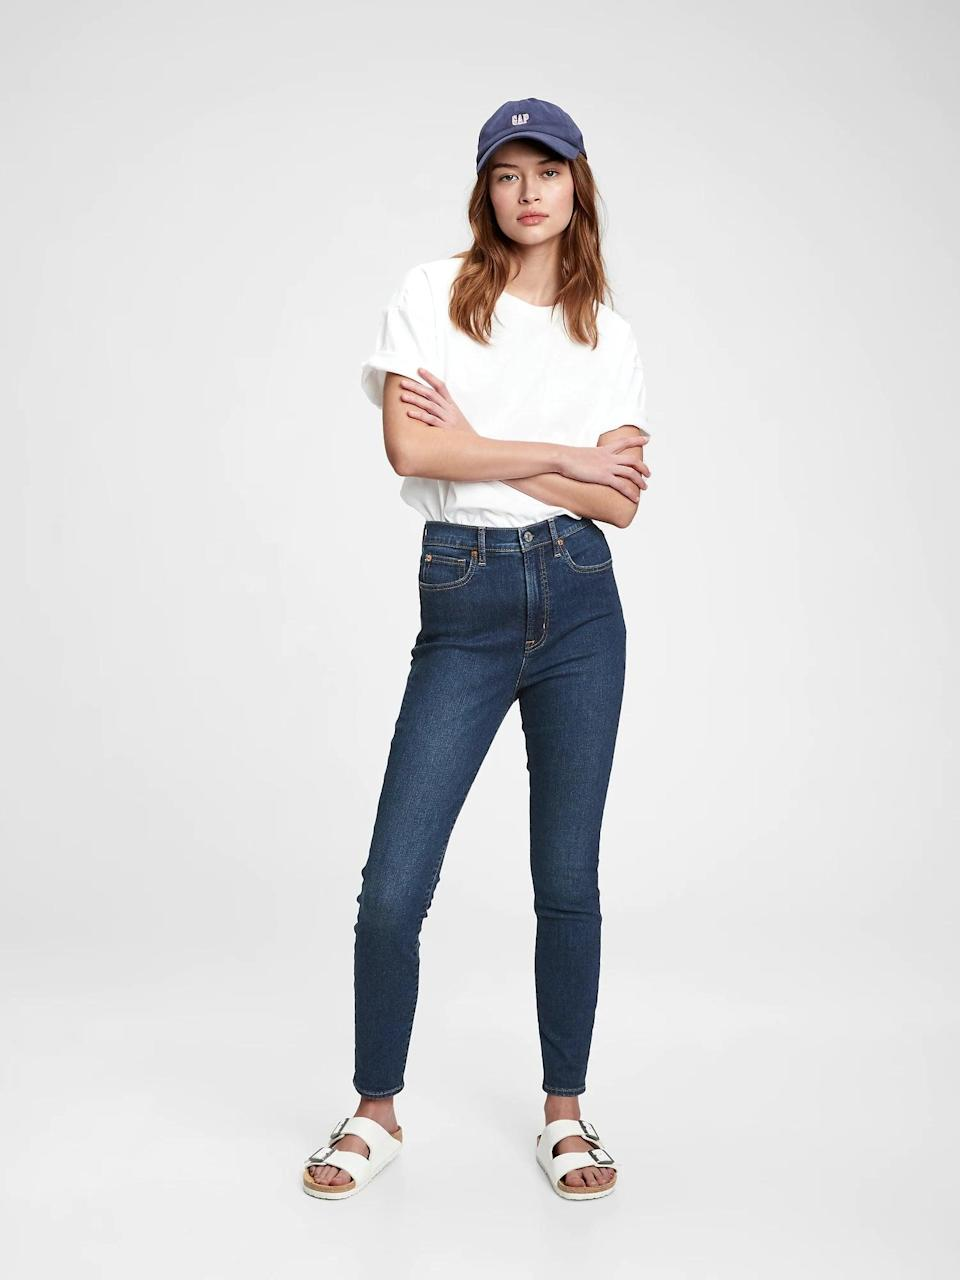 <p>Skinny jean lovers, these <span>Gap Sky High Rise True Skinny Jeans with Secret Smoothing Pockets</span> ($55, originally $80) are ideal.</p>